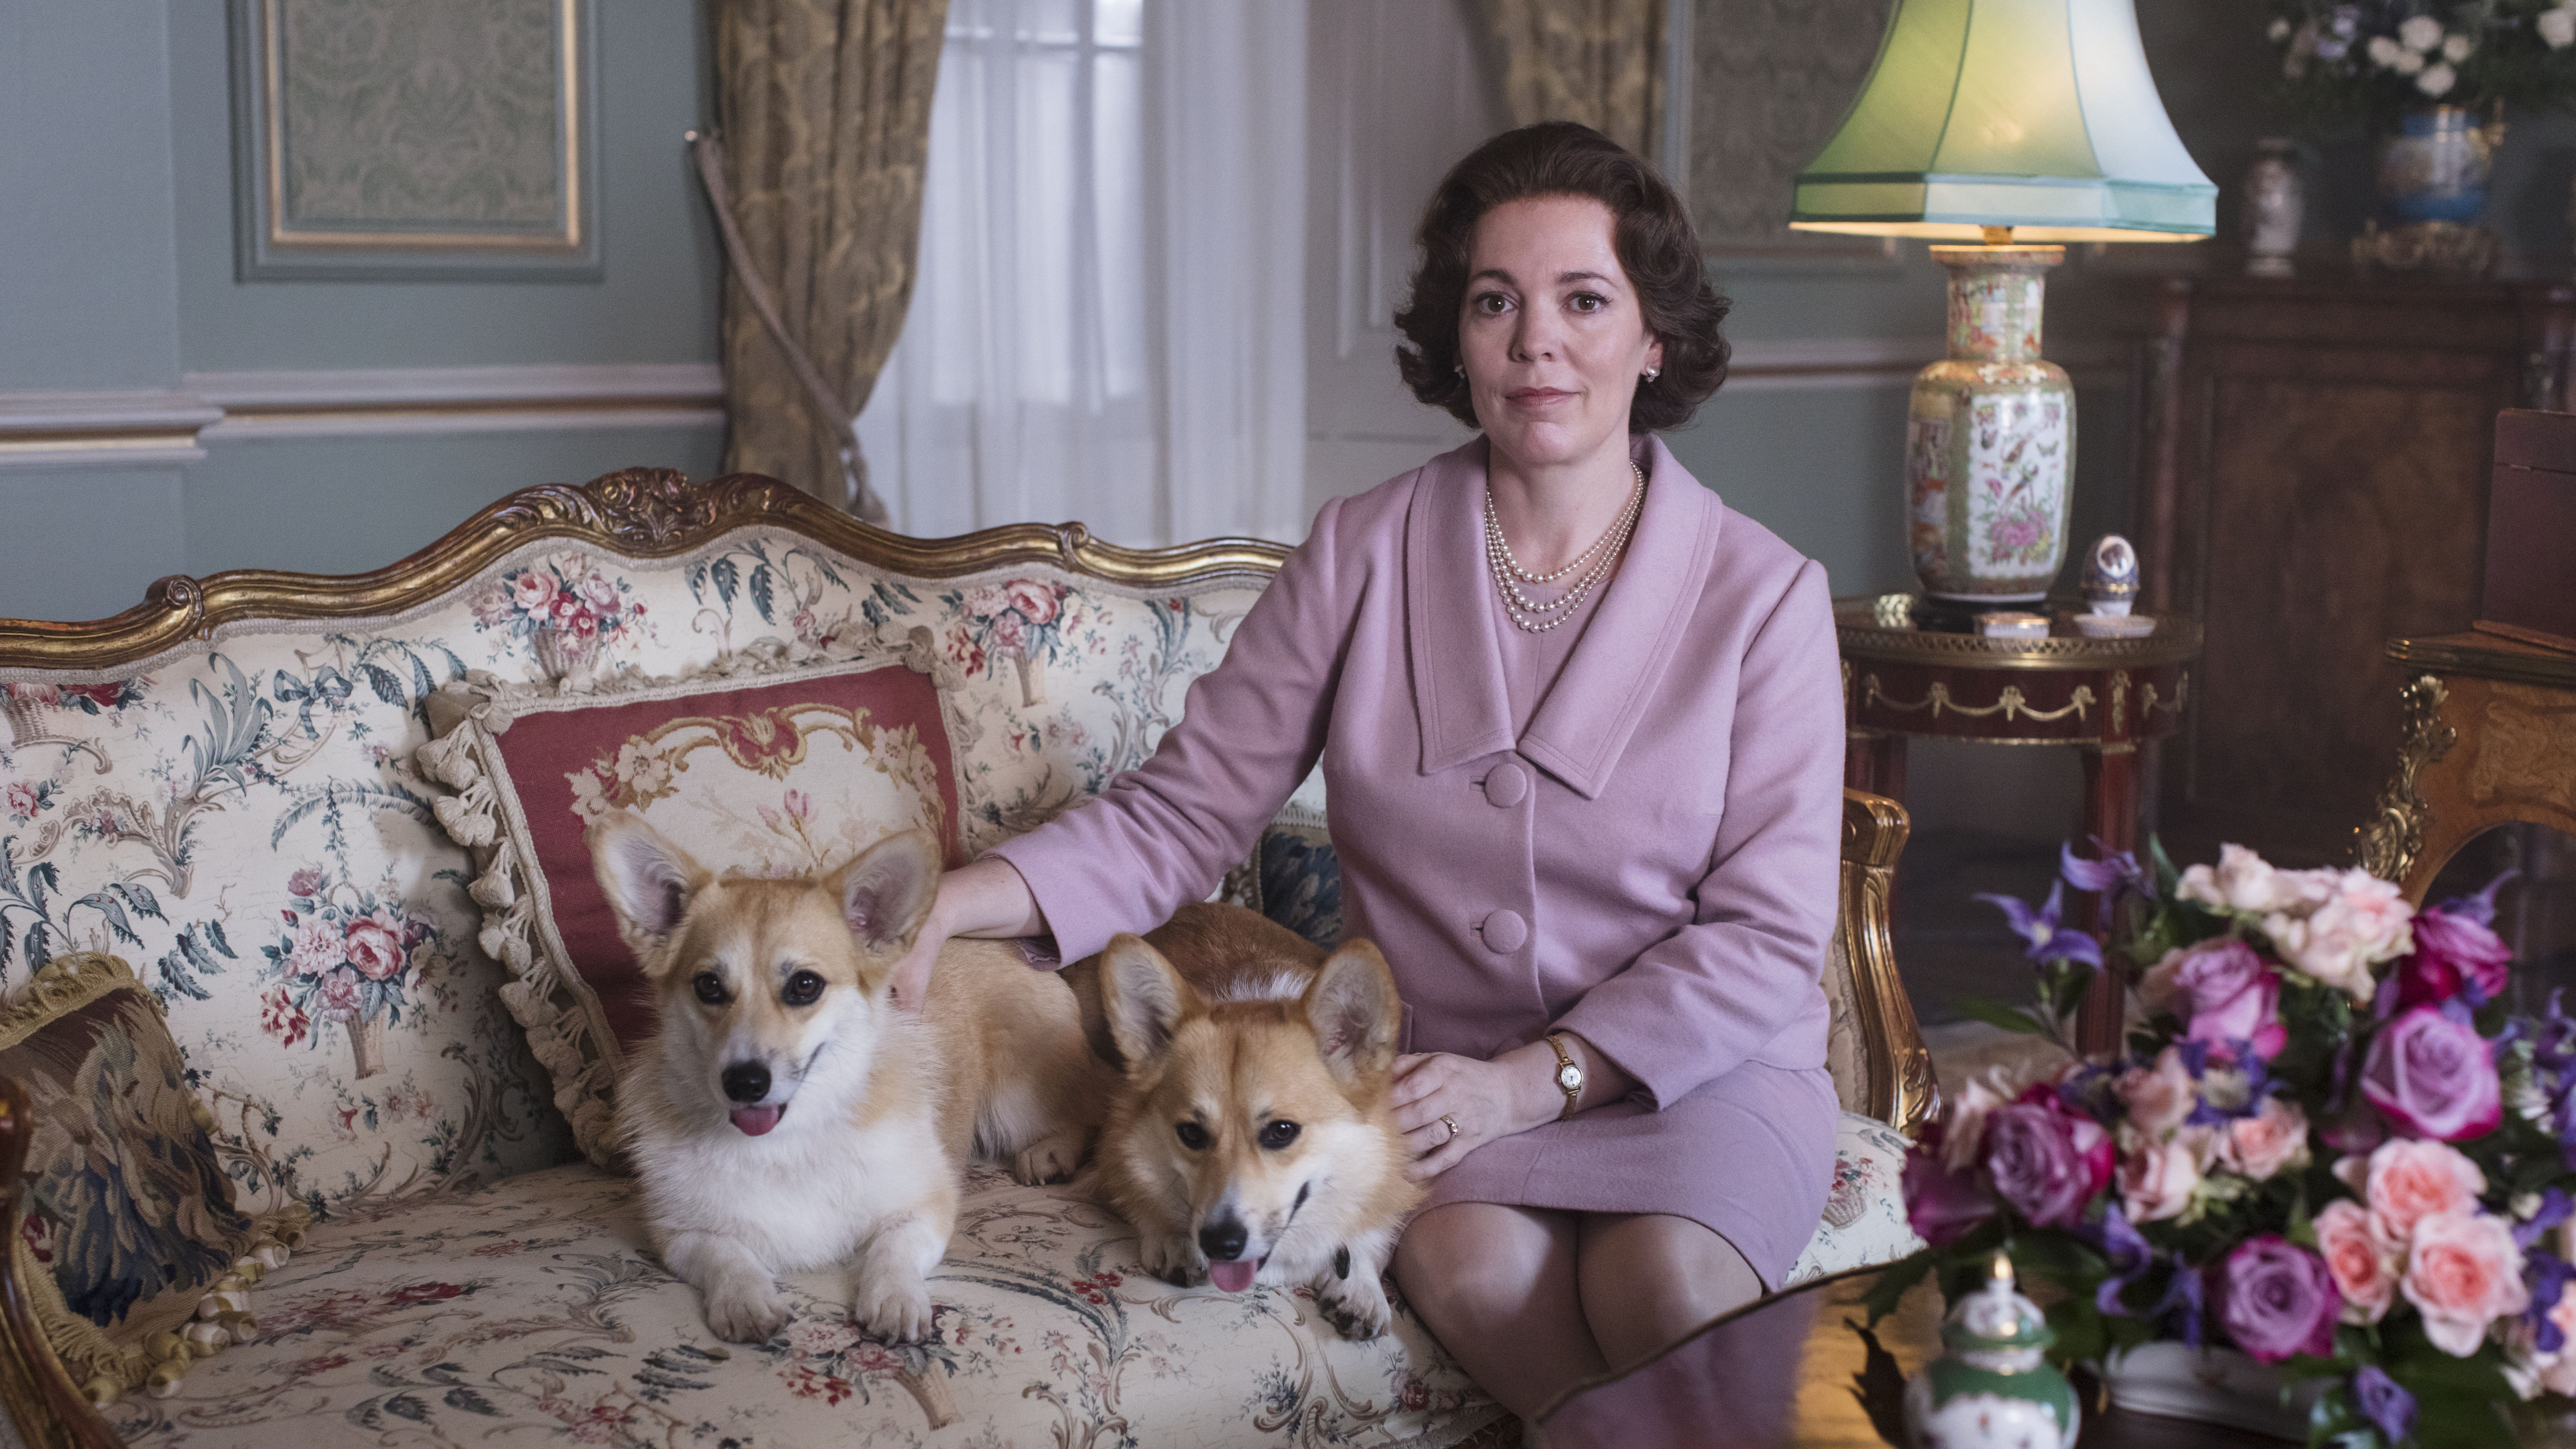 Netflix confirms launch date for new series of The Crown starring